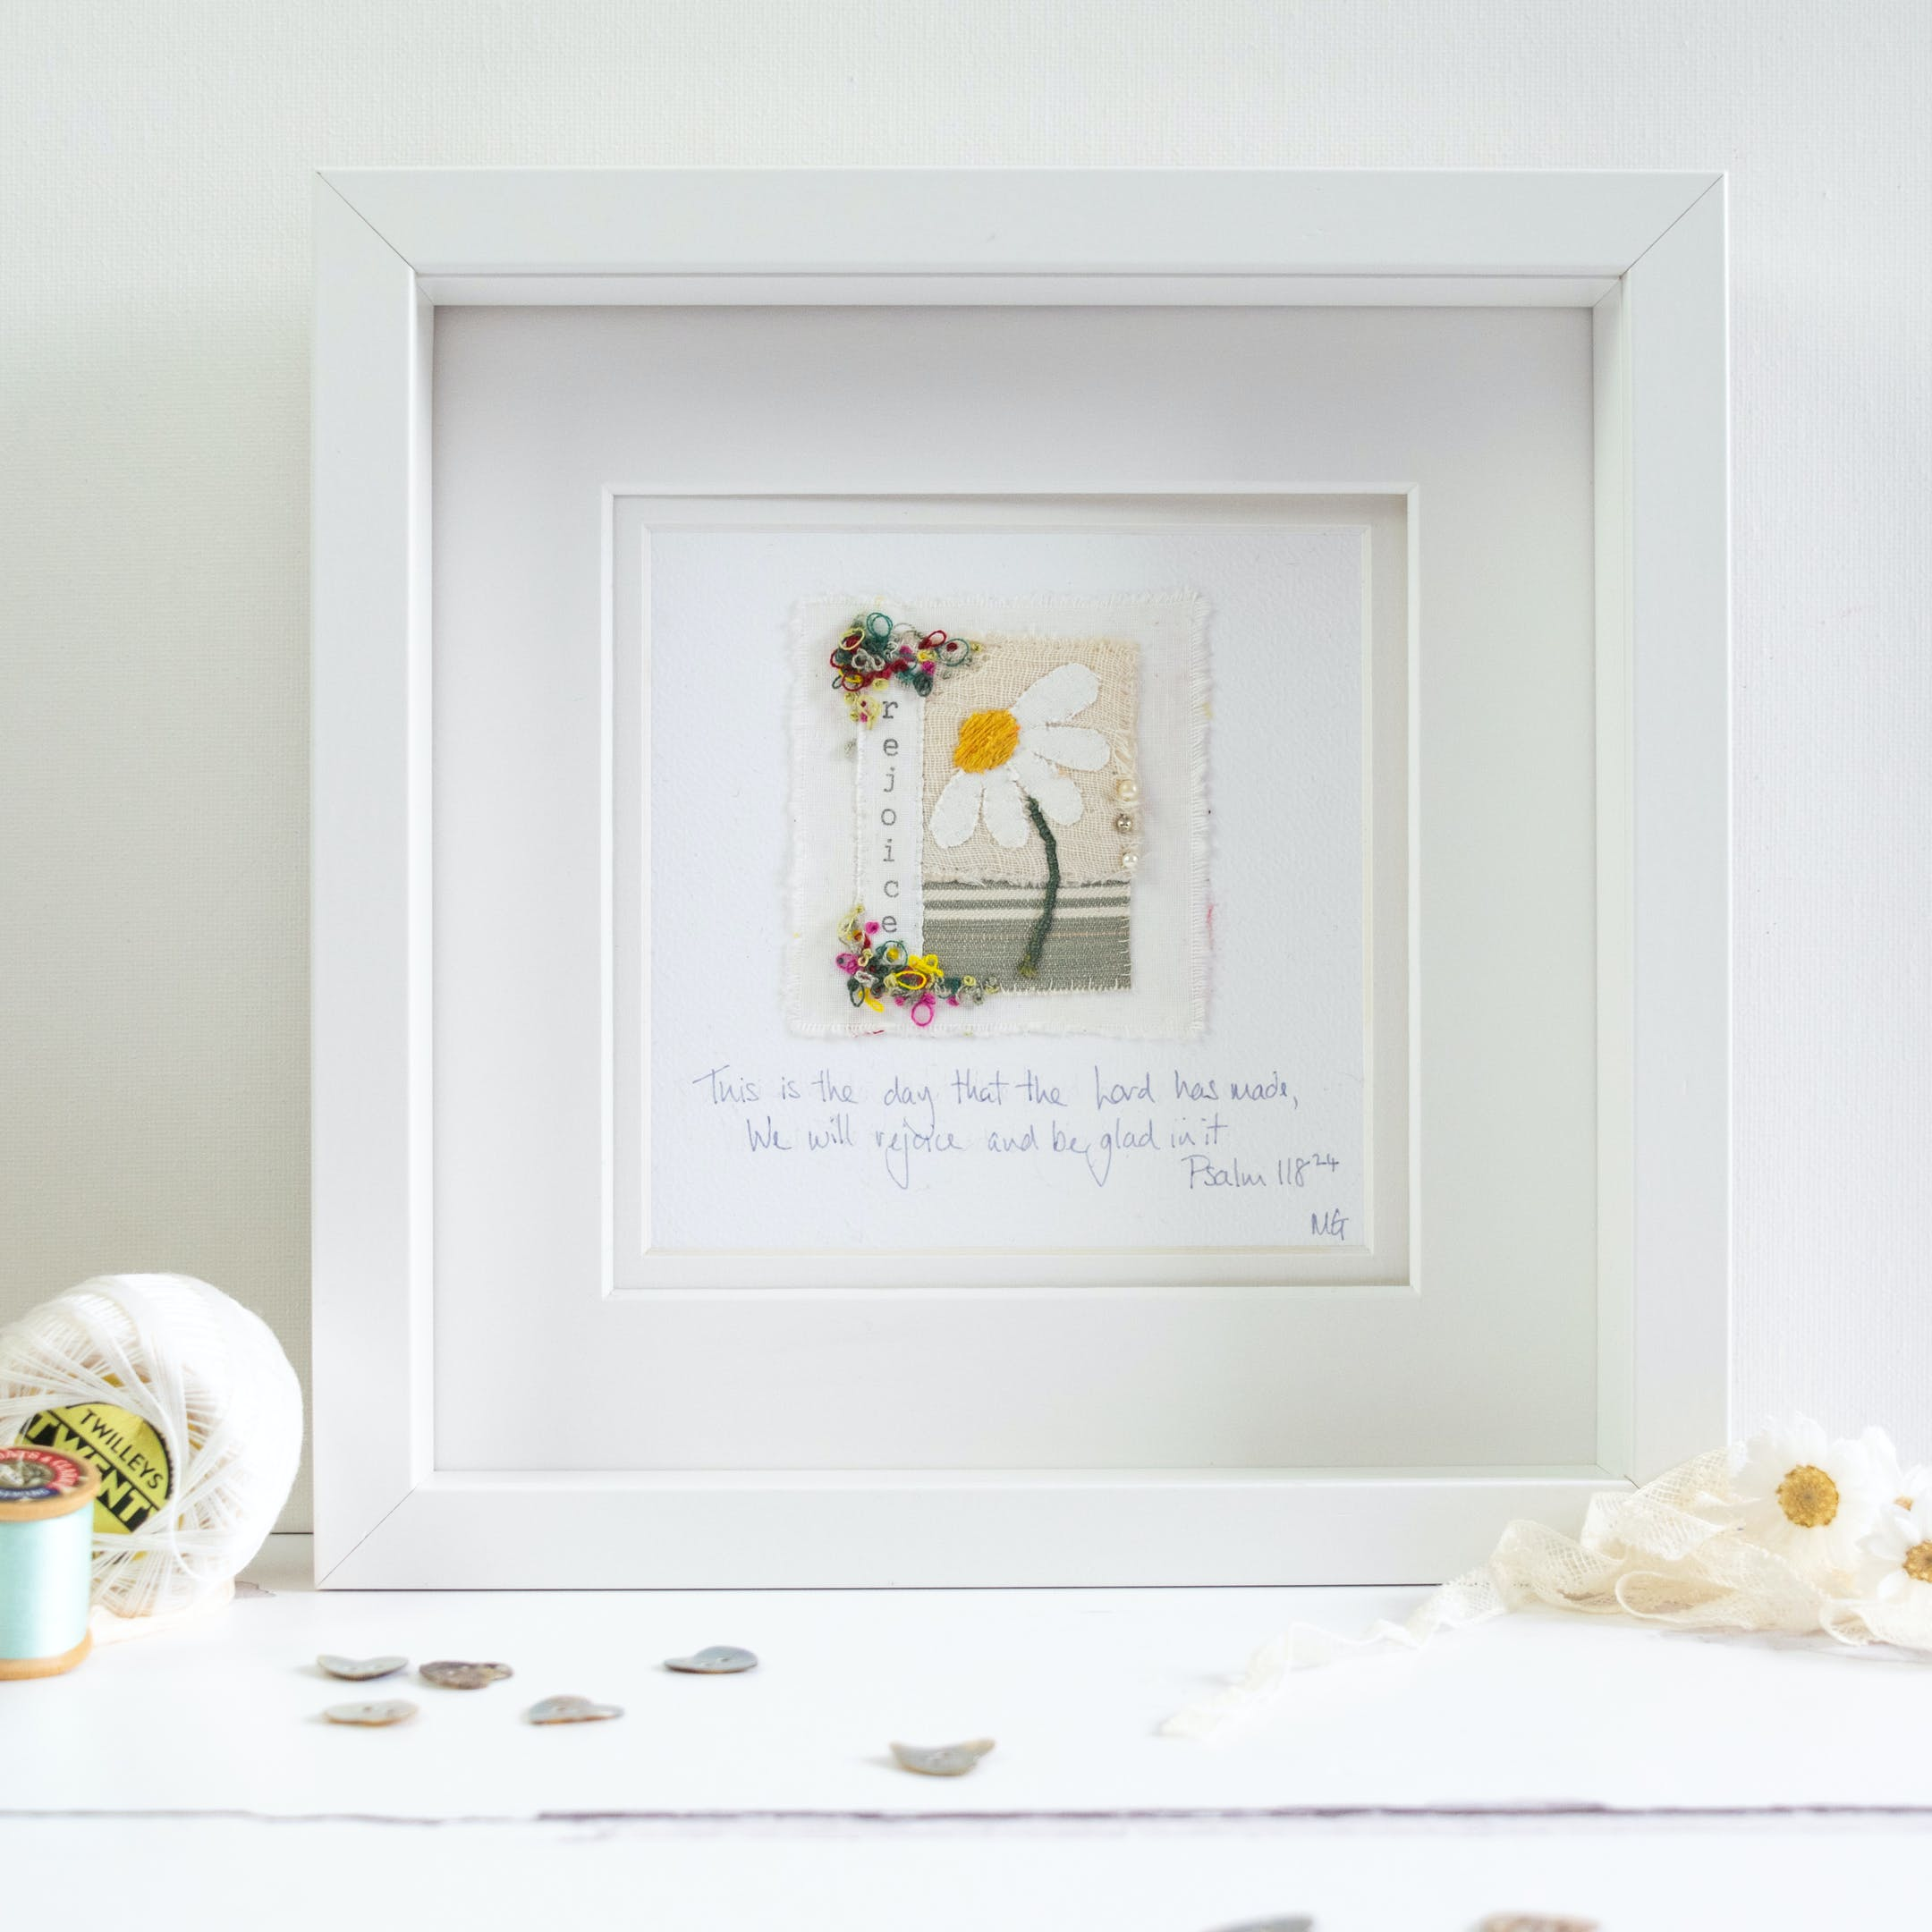 Embroidered daisy and mixed textile art by Teeny White Daisy @ Cheerfully Given